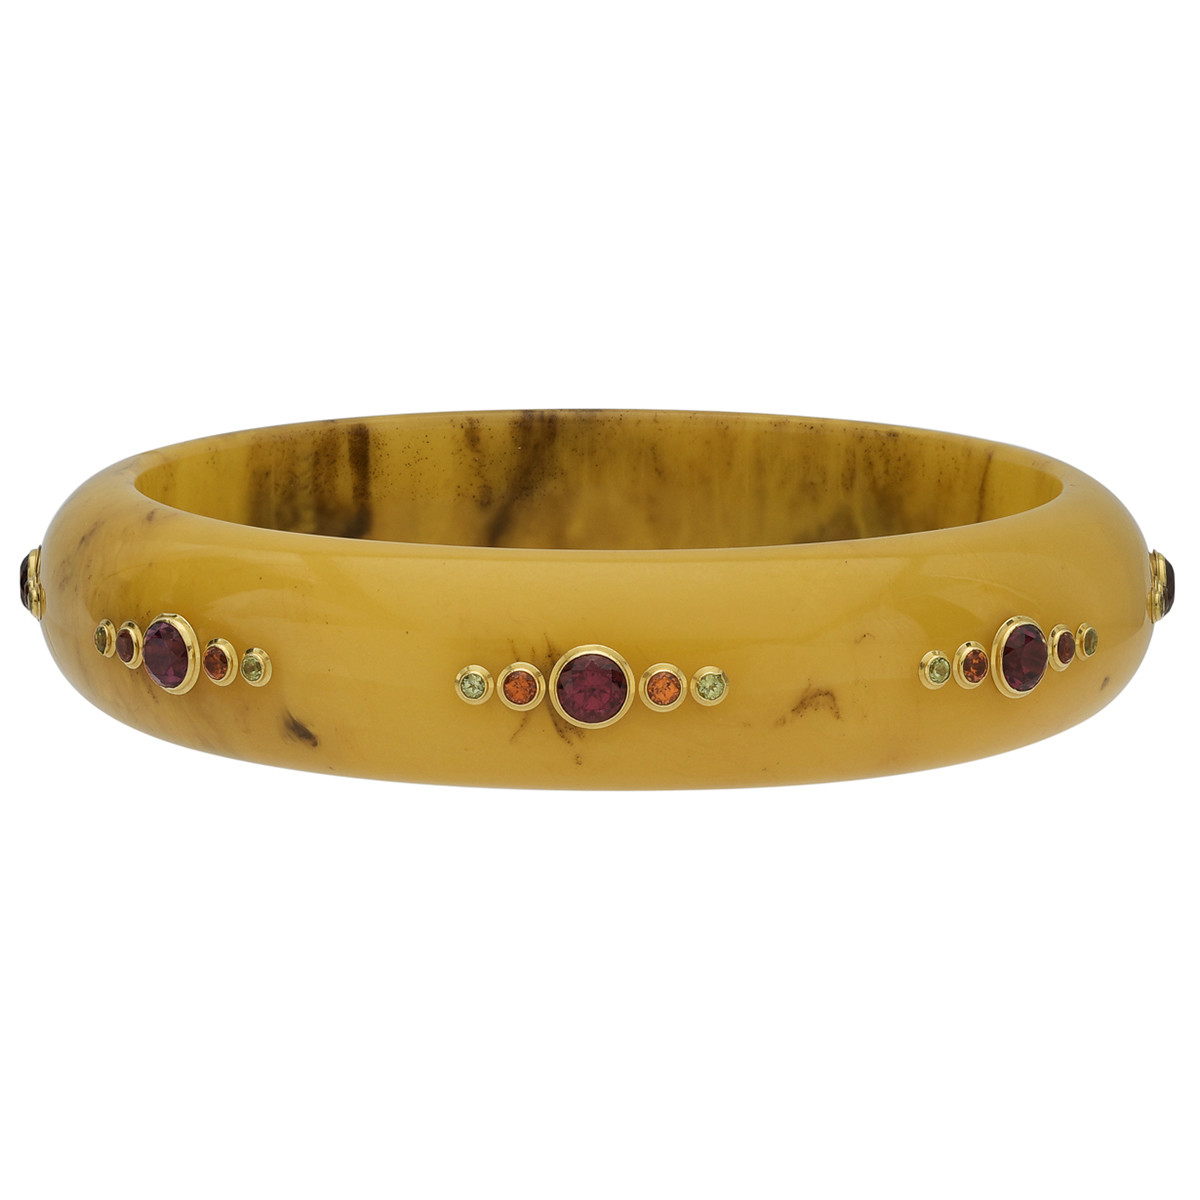 Amber Bakelite Bangle with Multicolored Gemstones